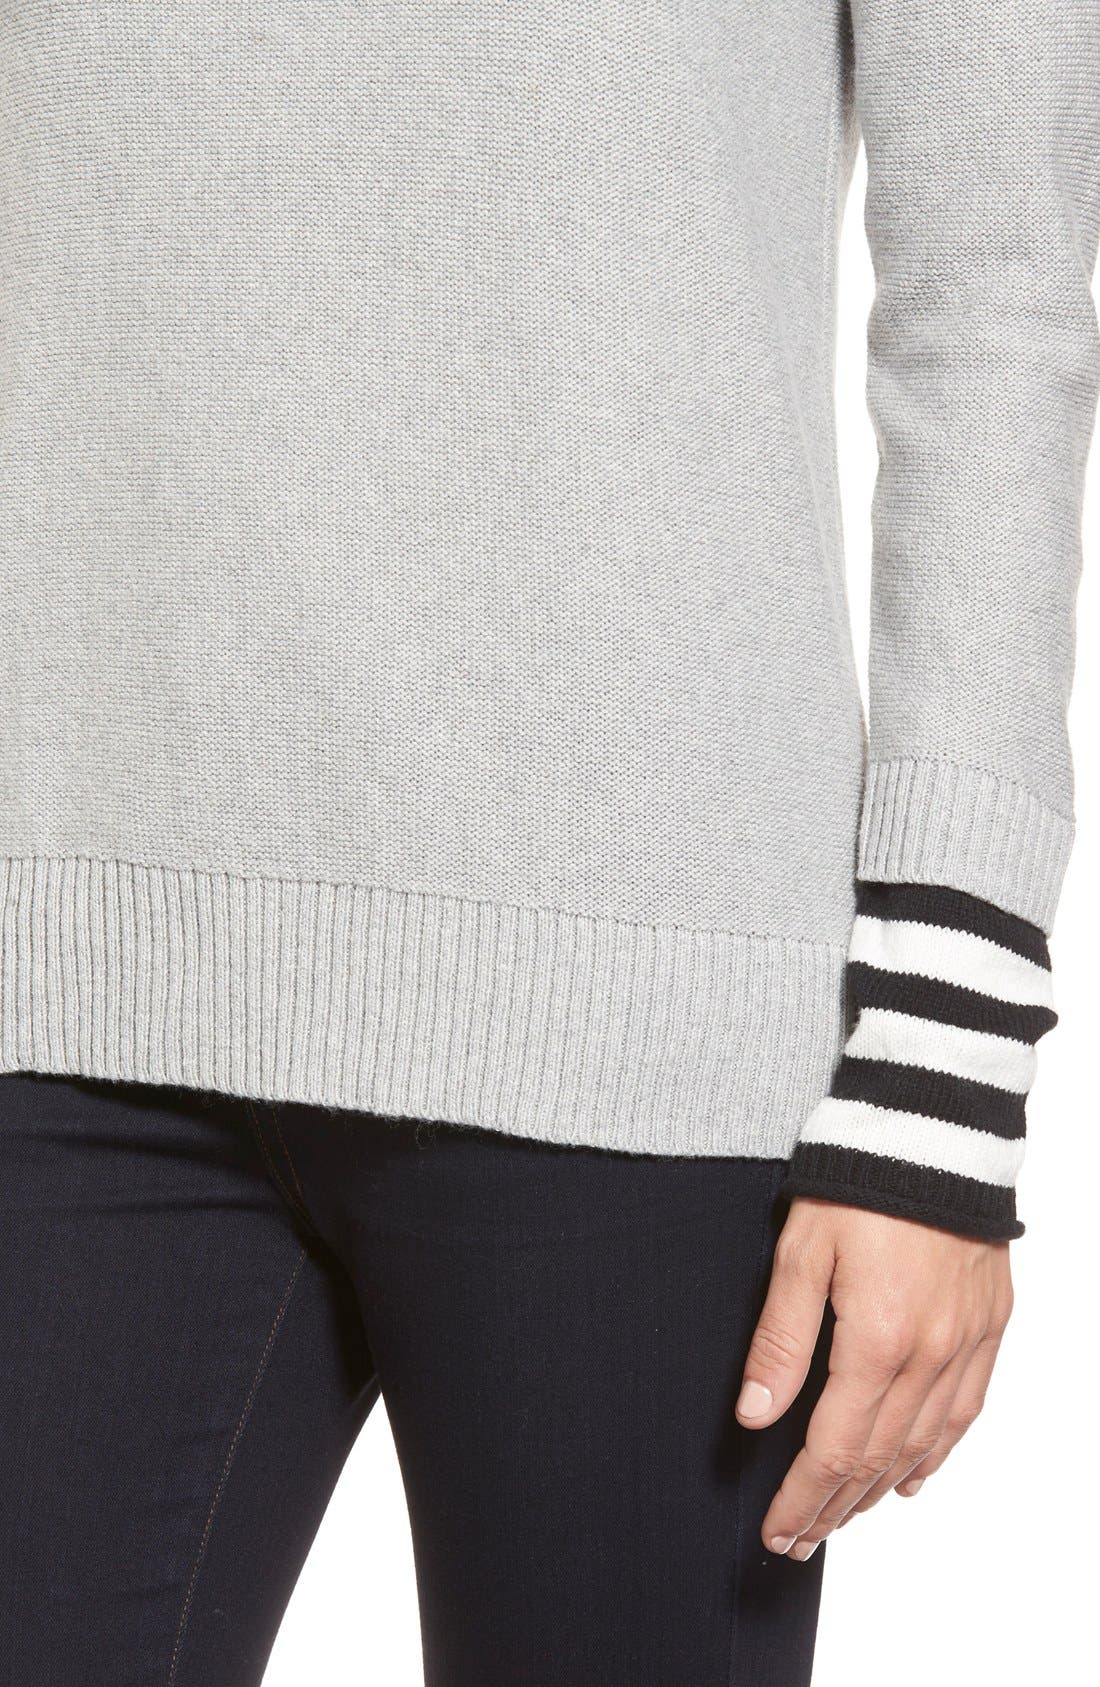 Contrast Cuff Crewneck Sweater,                             Alternate thumbnail 9, color,                             030